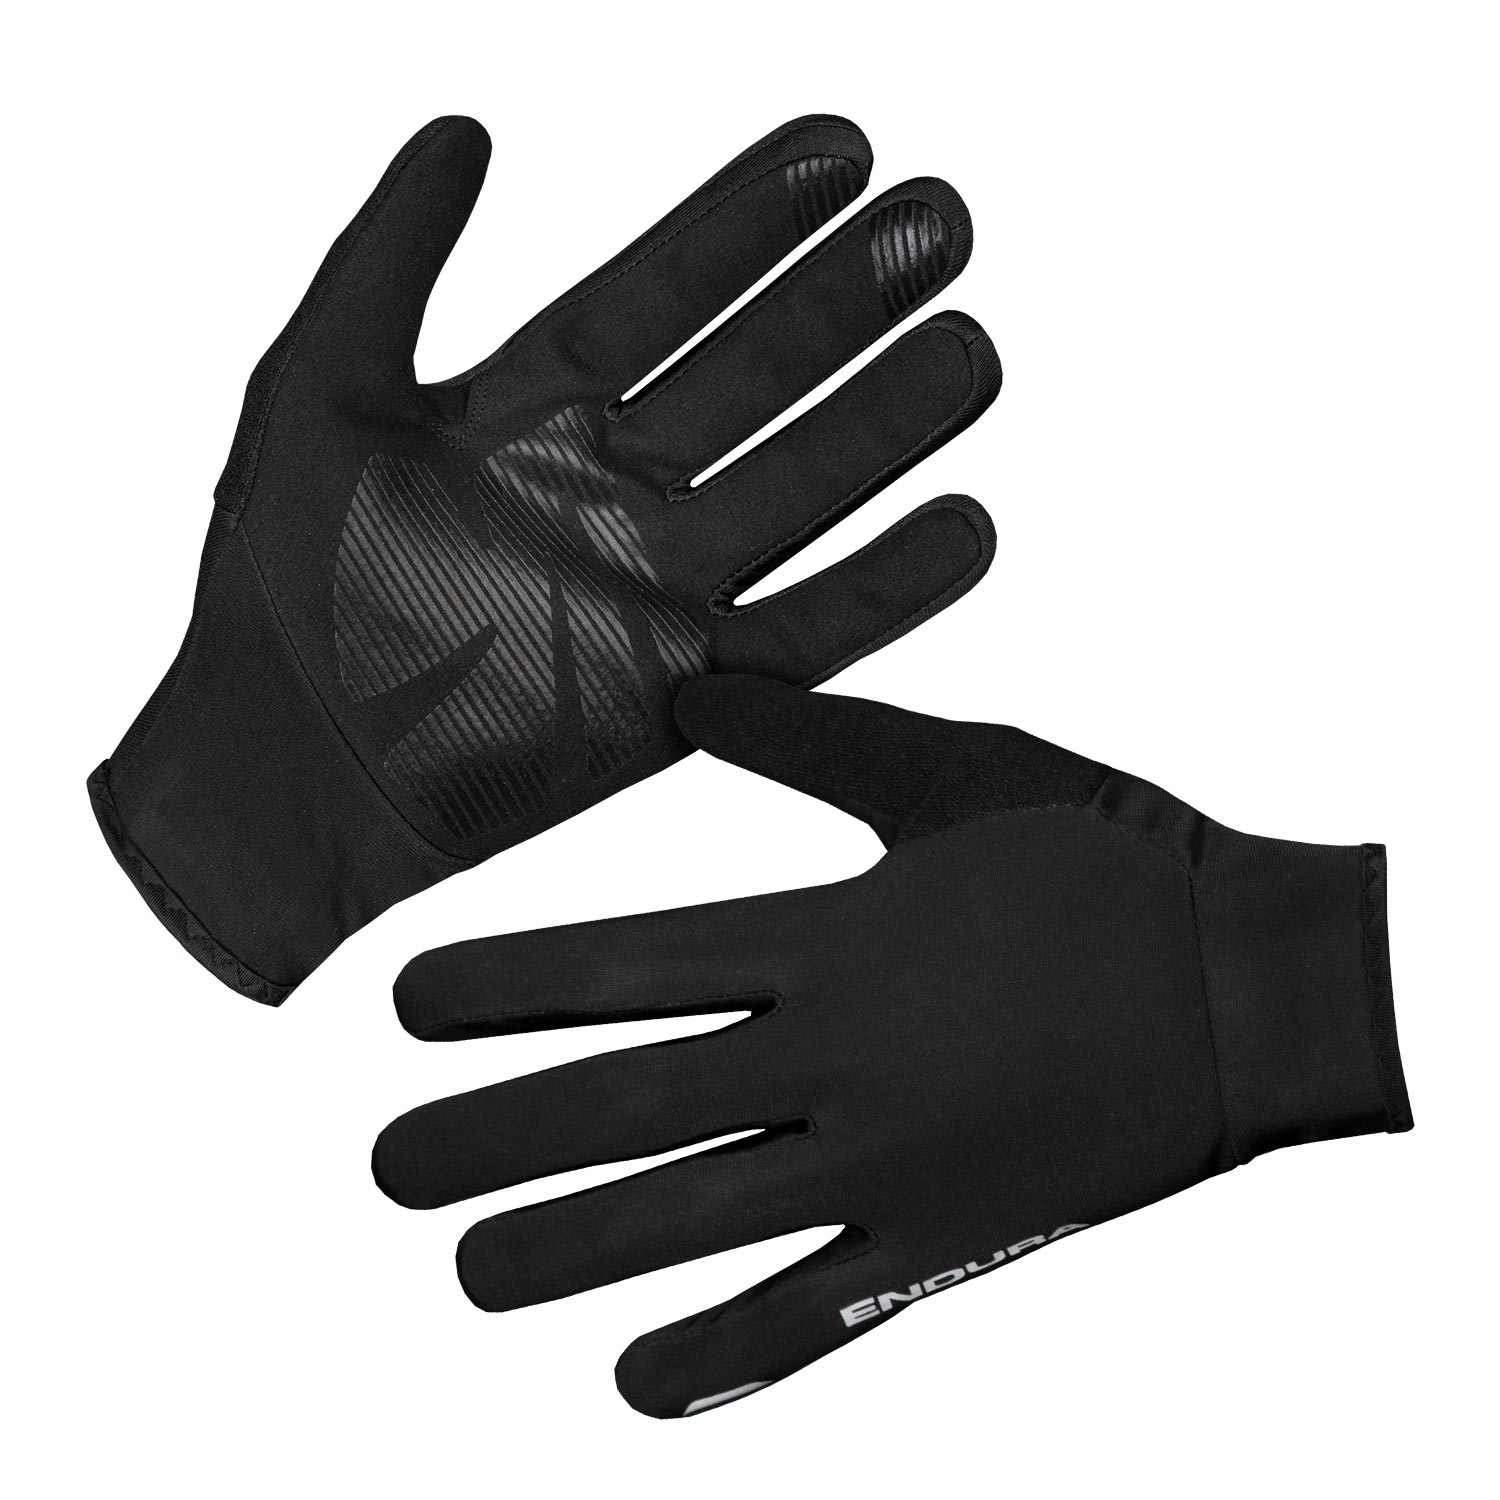 Endura FS260-Pro (Extra Large) Thermo Cycling Gloves